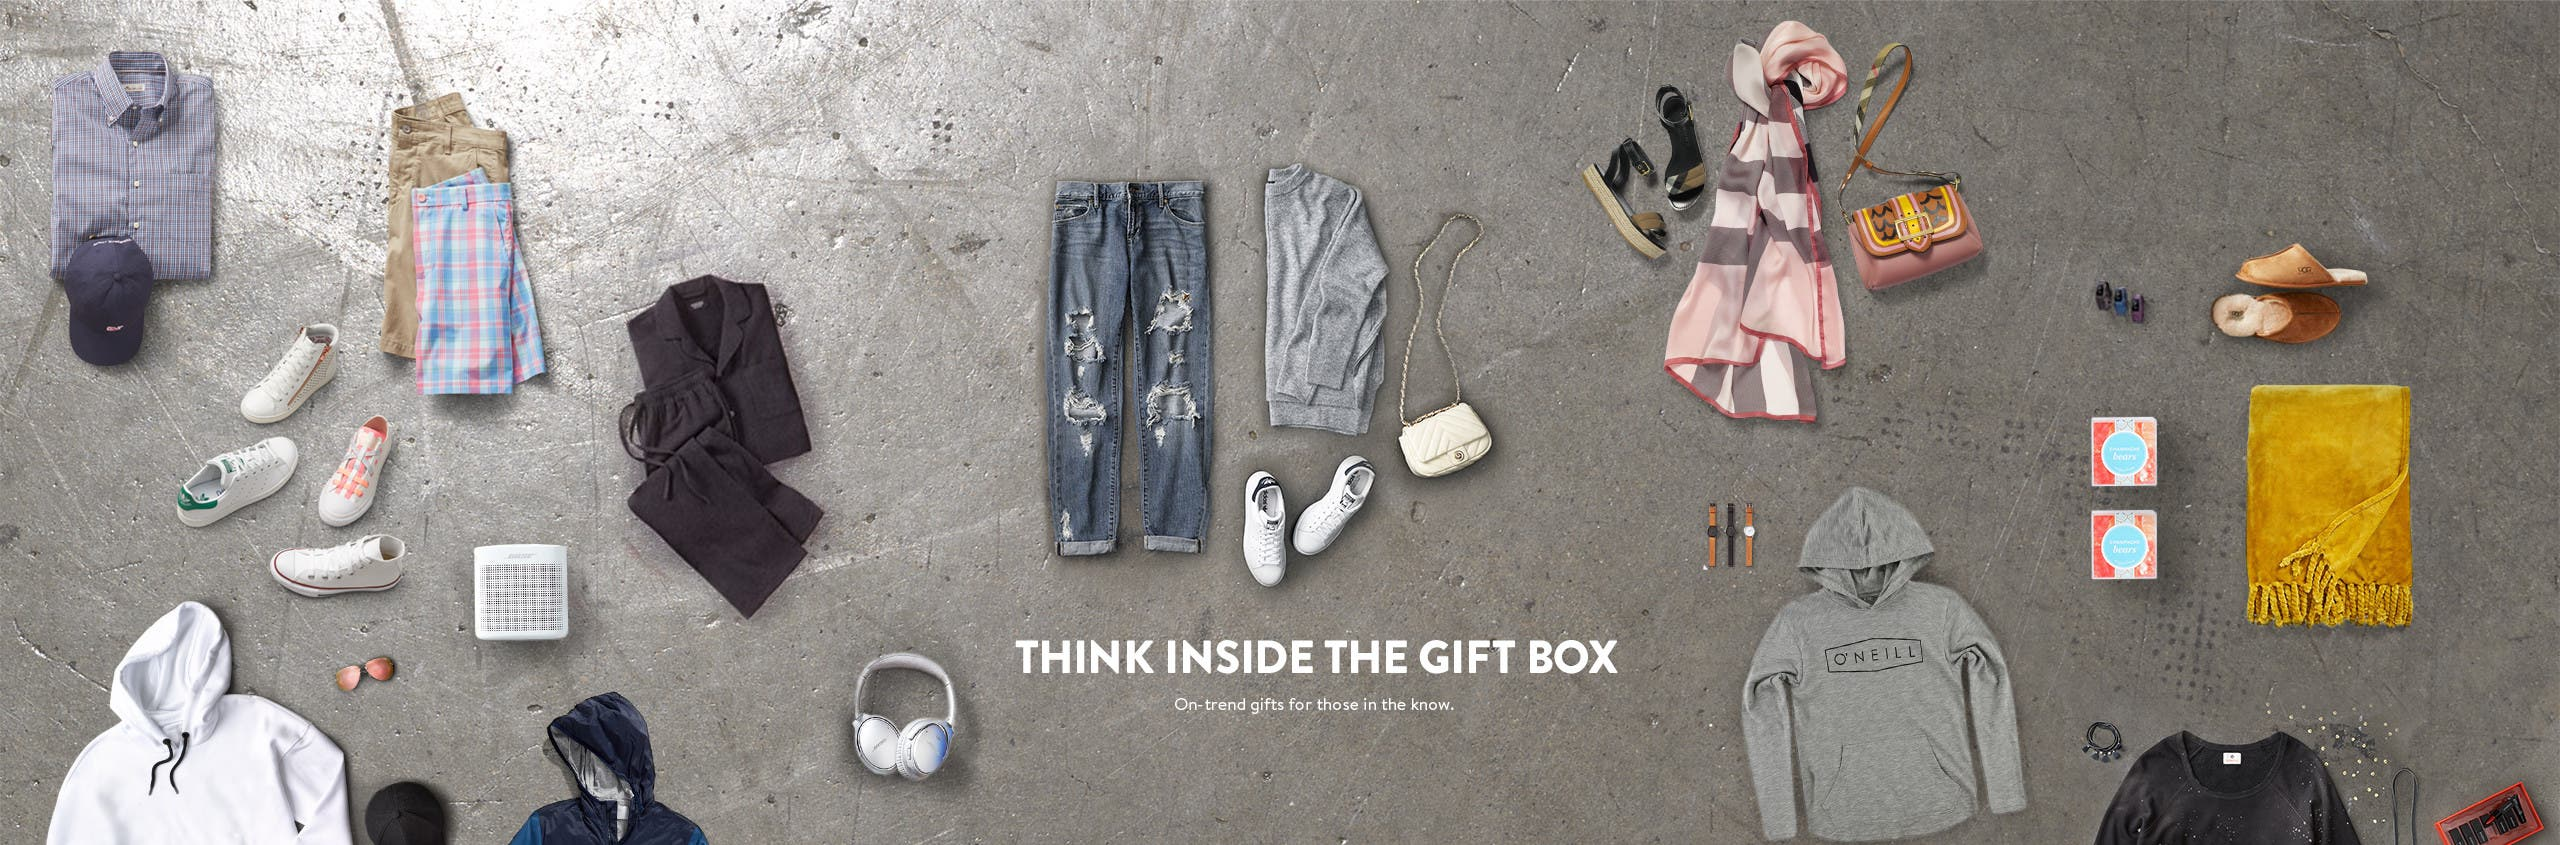 Think inside the gift box. Gifts for her, him, kids and babies.